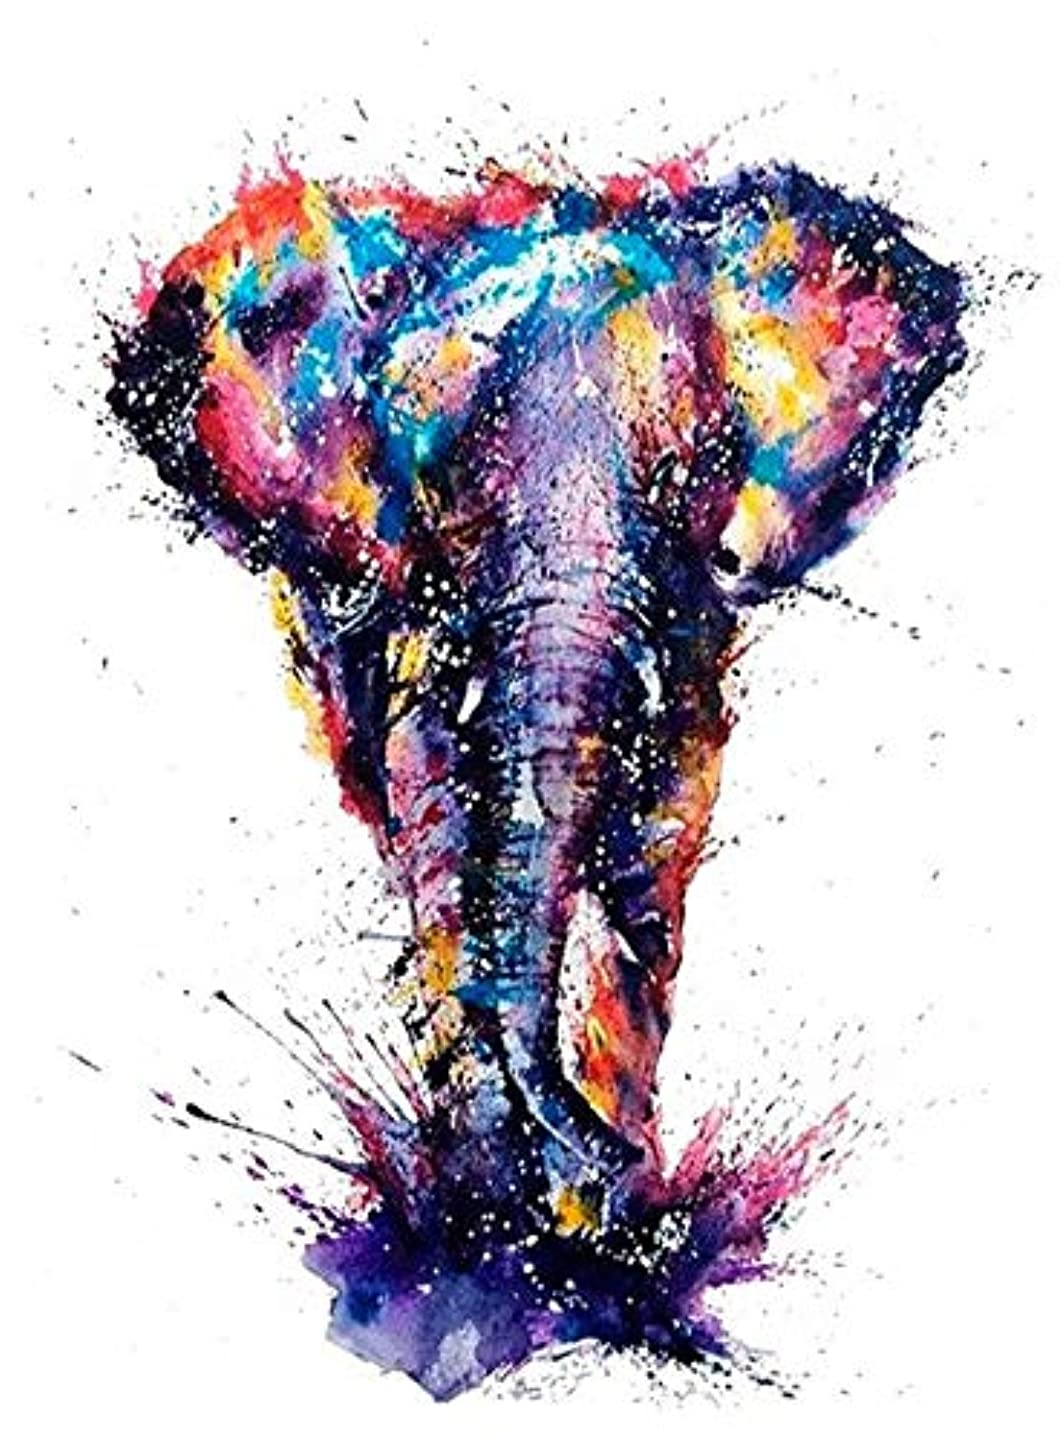 SuperDecor 5D DIY Diamond Painting Full Drills by Number Kits with 16'' Magnetic Poster Hanger Frame for Home Wall Decor, 16x24 Inch Colorful Elephant